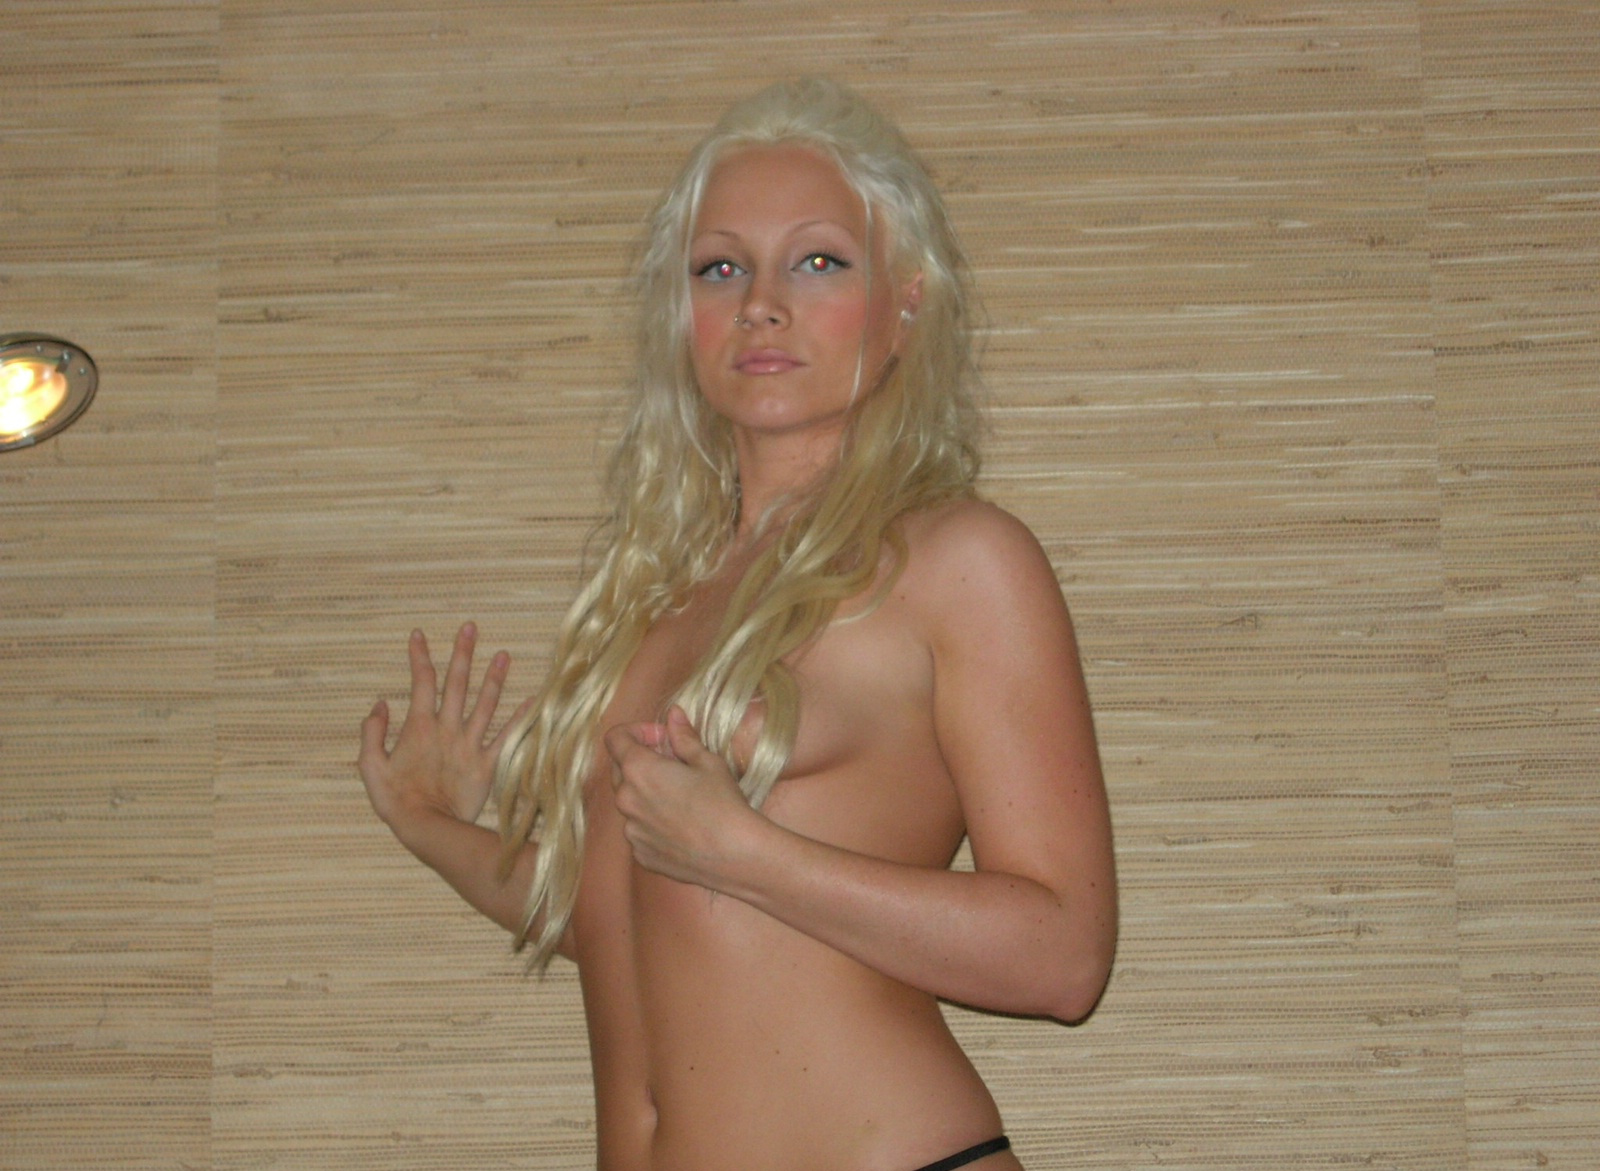 blonde-amateur-girl-from-sweden-young-naked-05